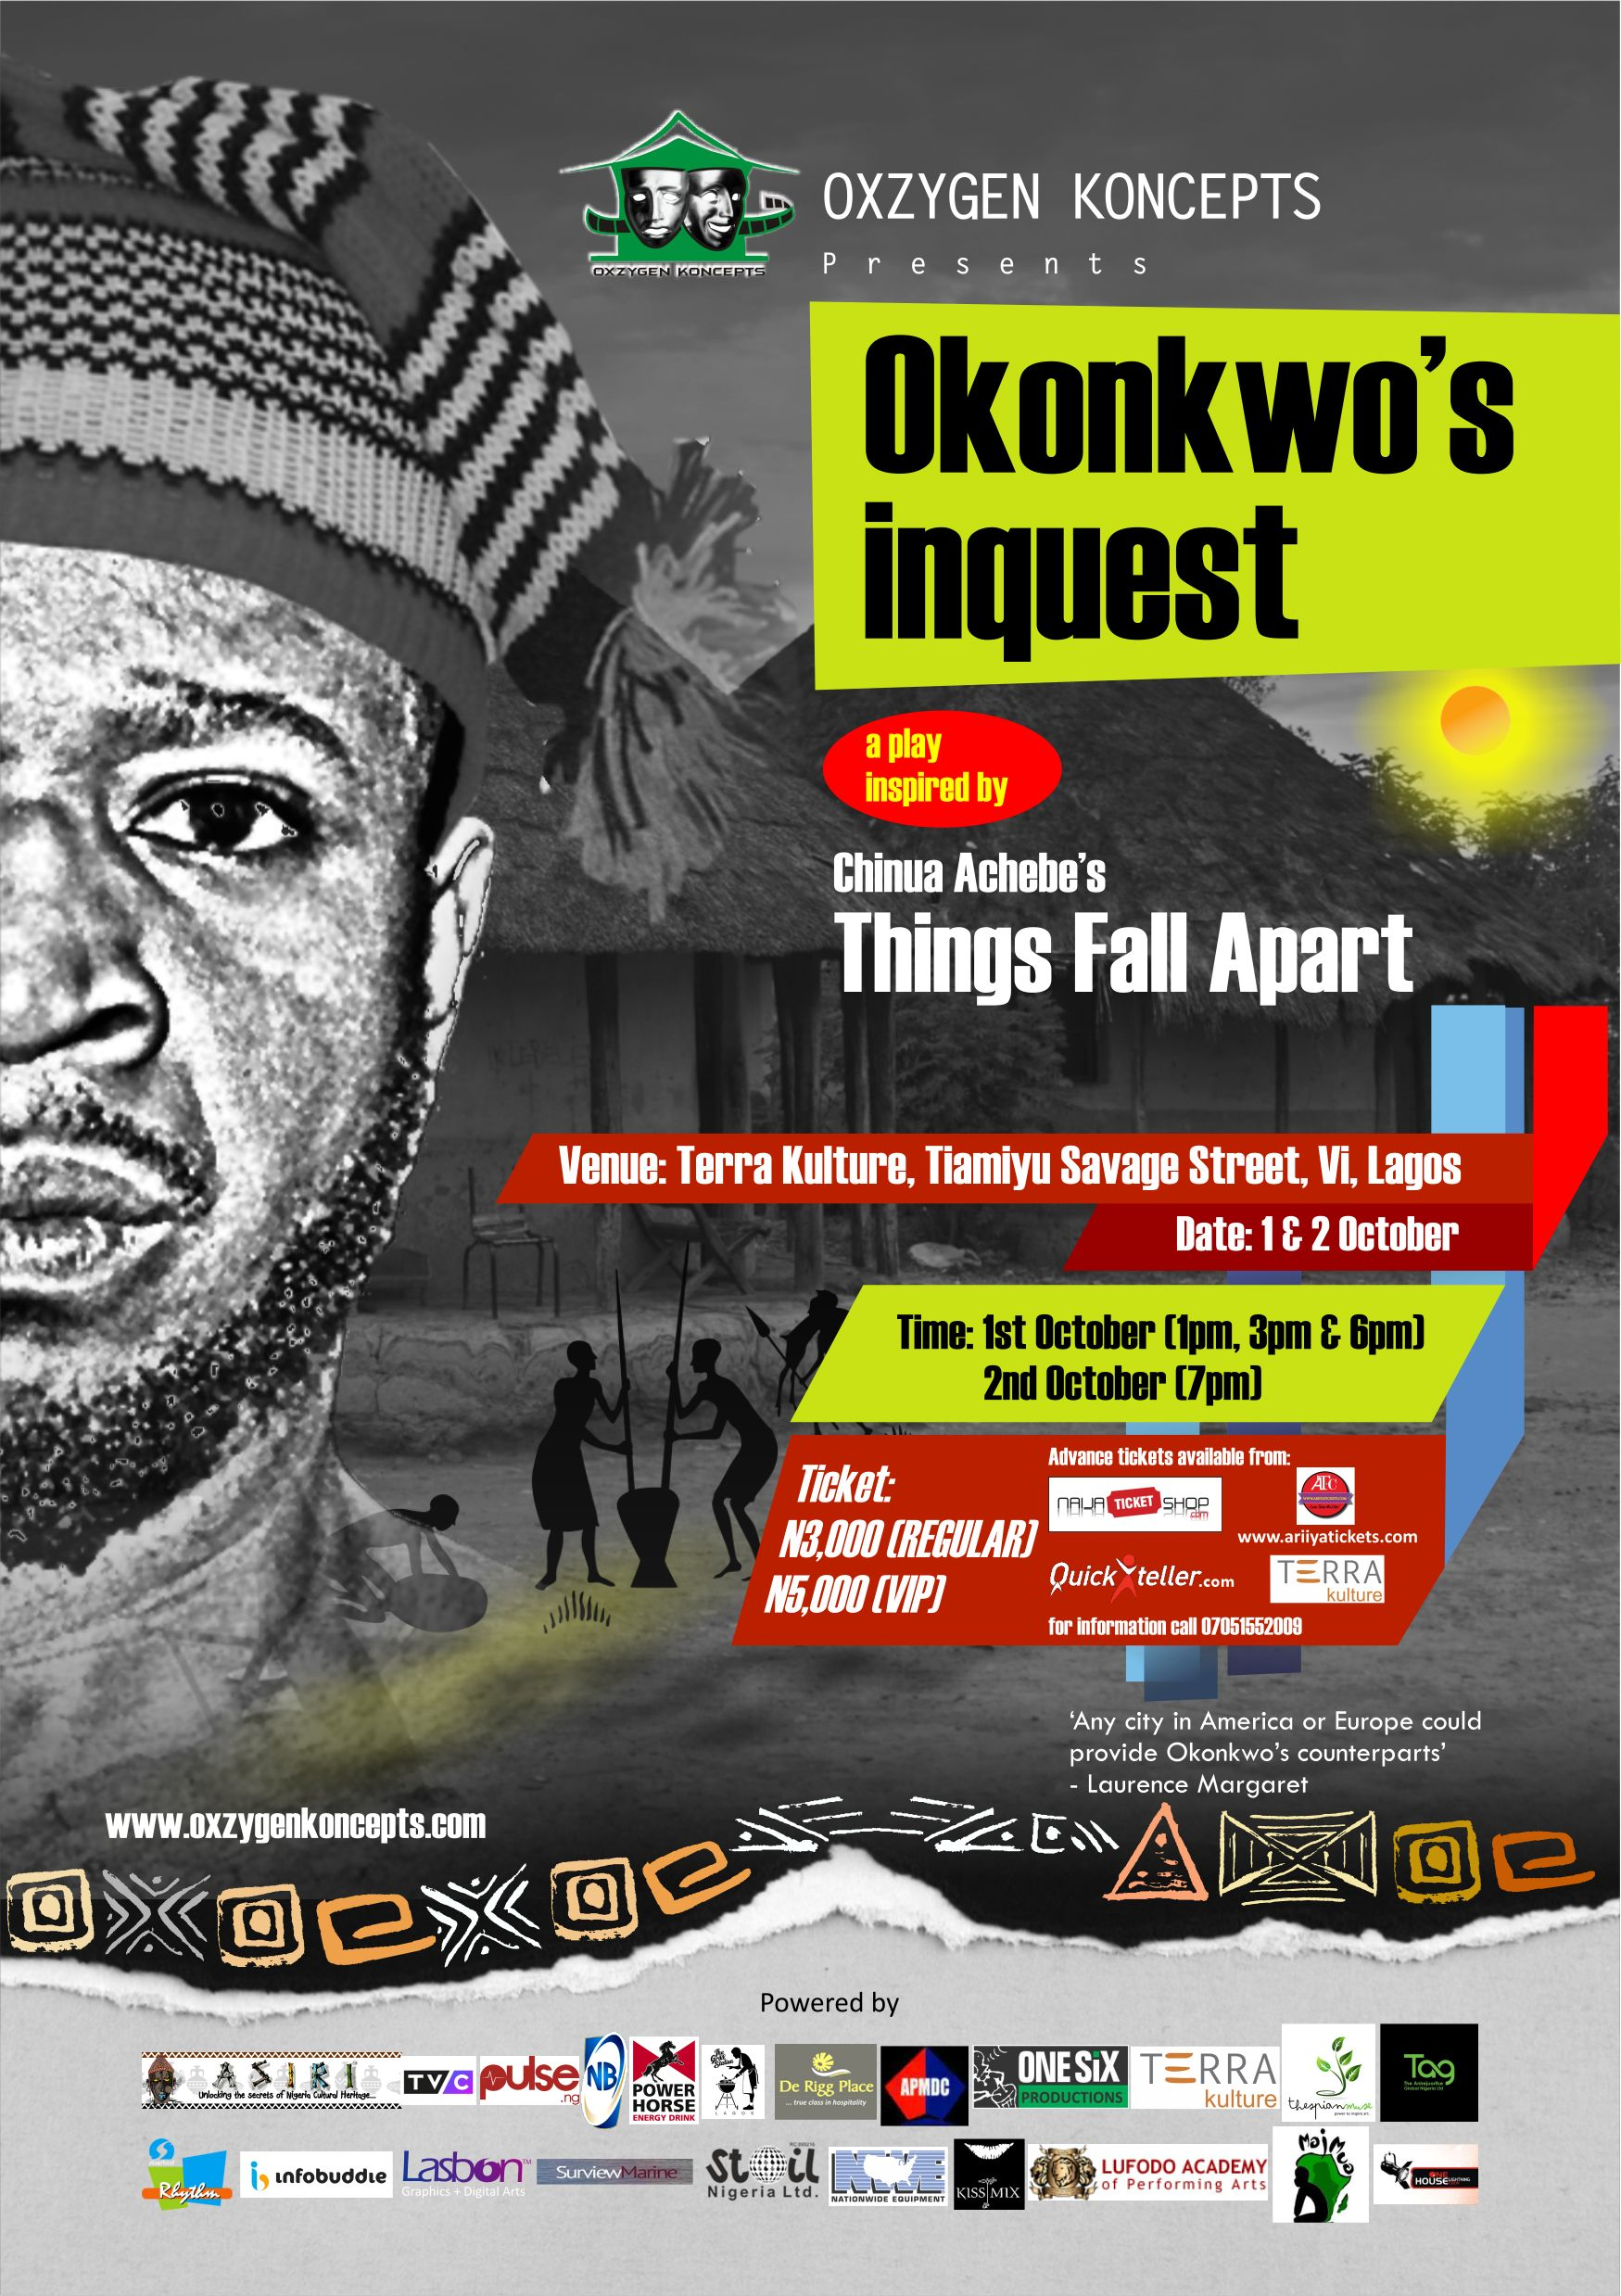 Okonkwo's Inquest flier